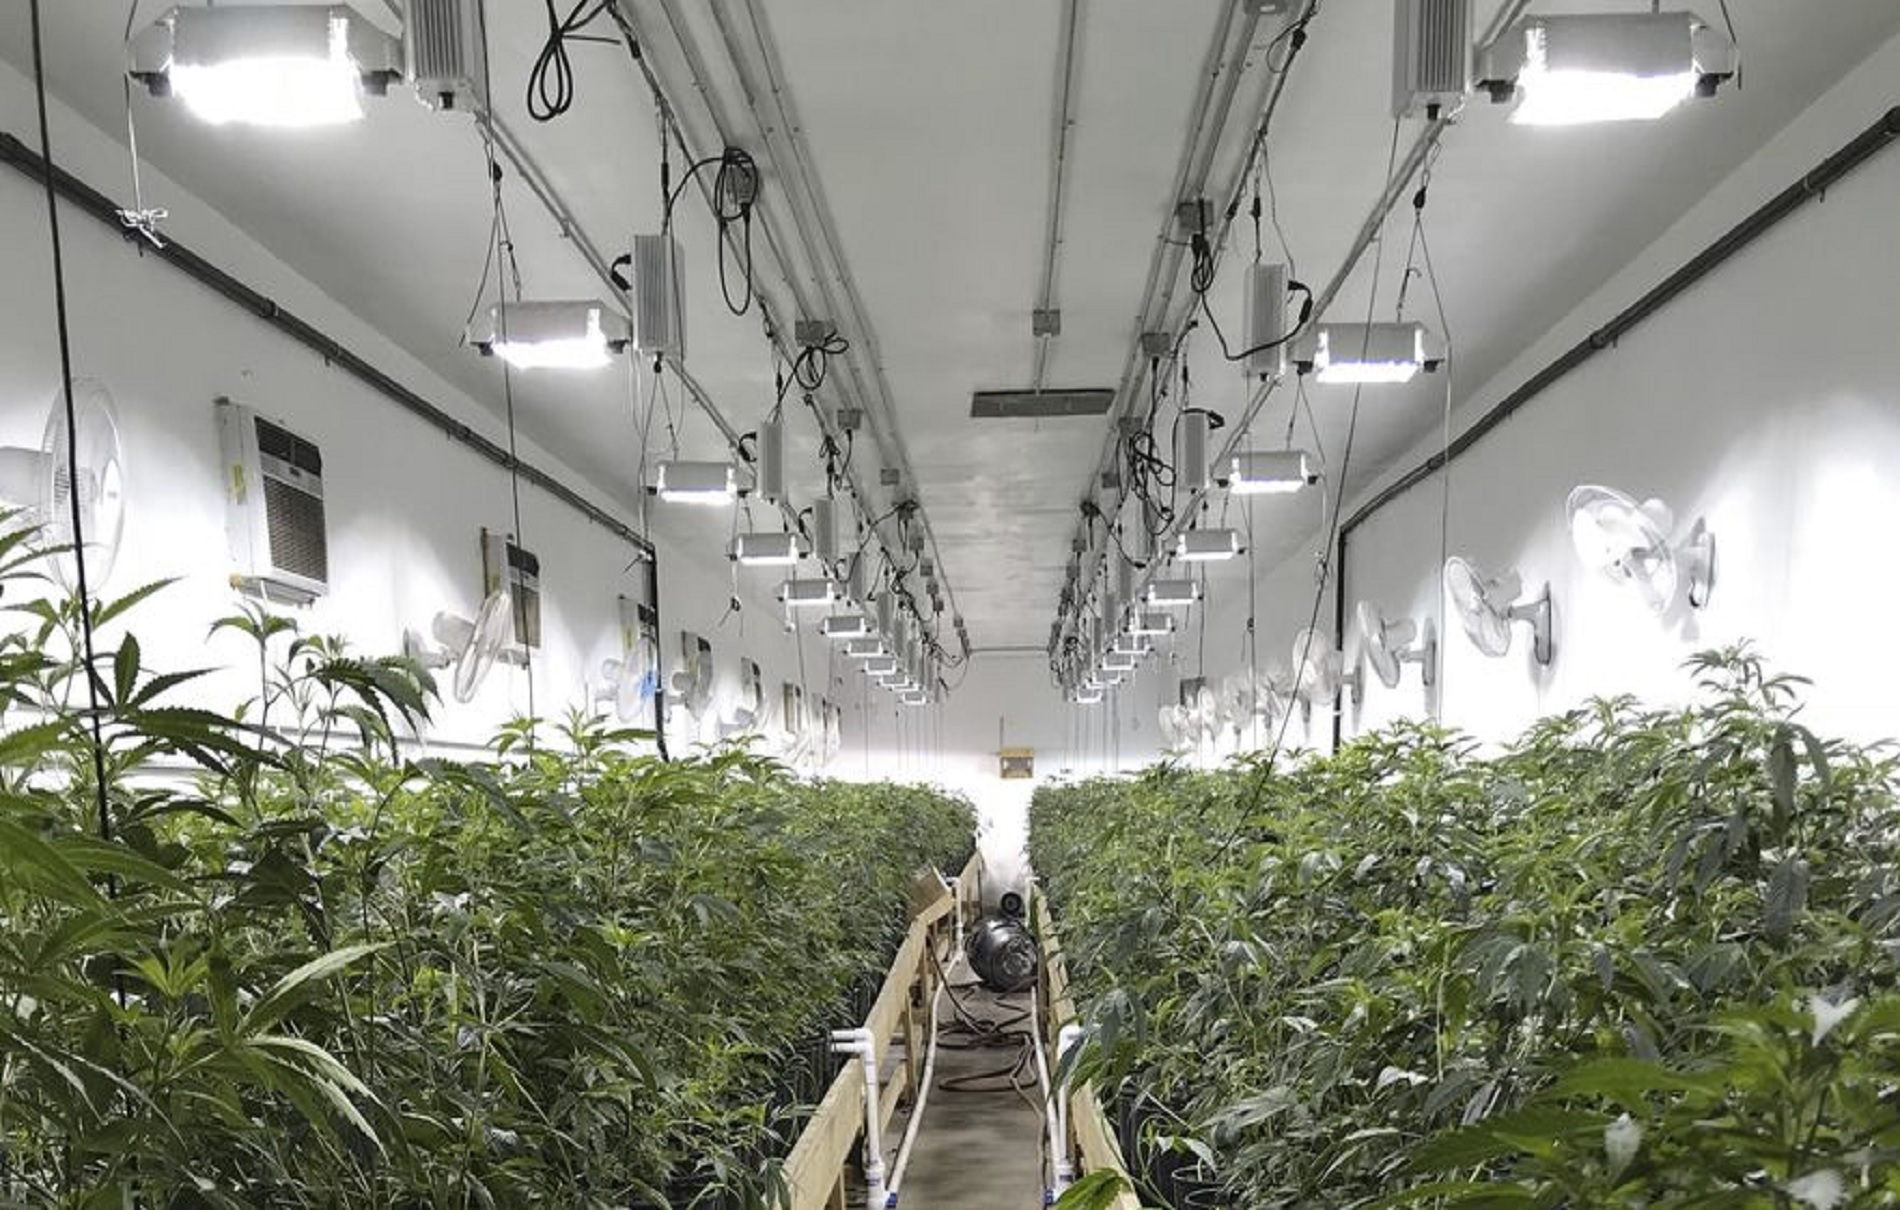 https://okweedtrader.com/wp-content/uploads/2019/04/Pic-of-MJ-Grower.jpg